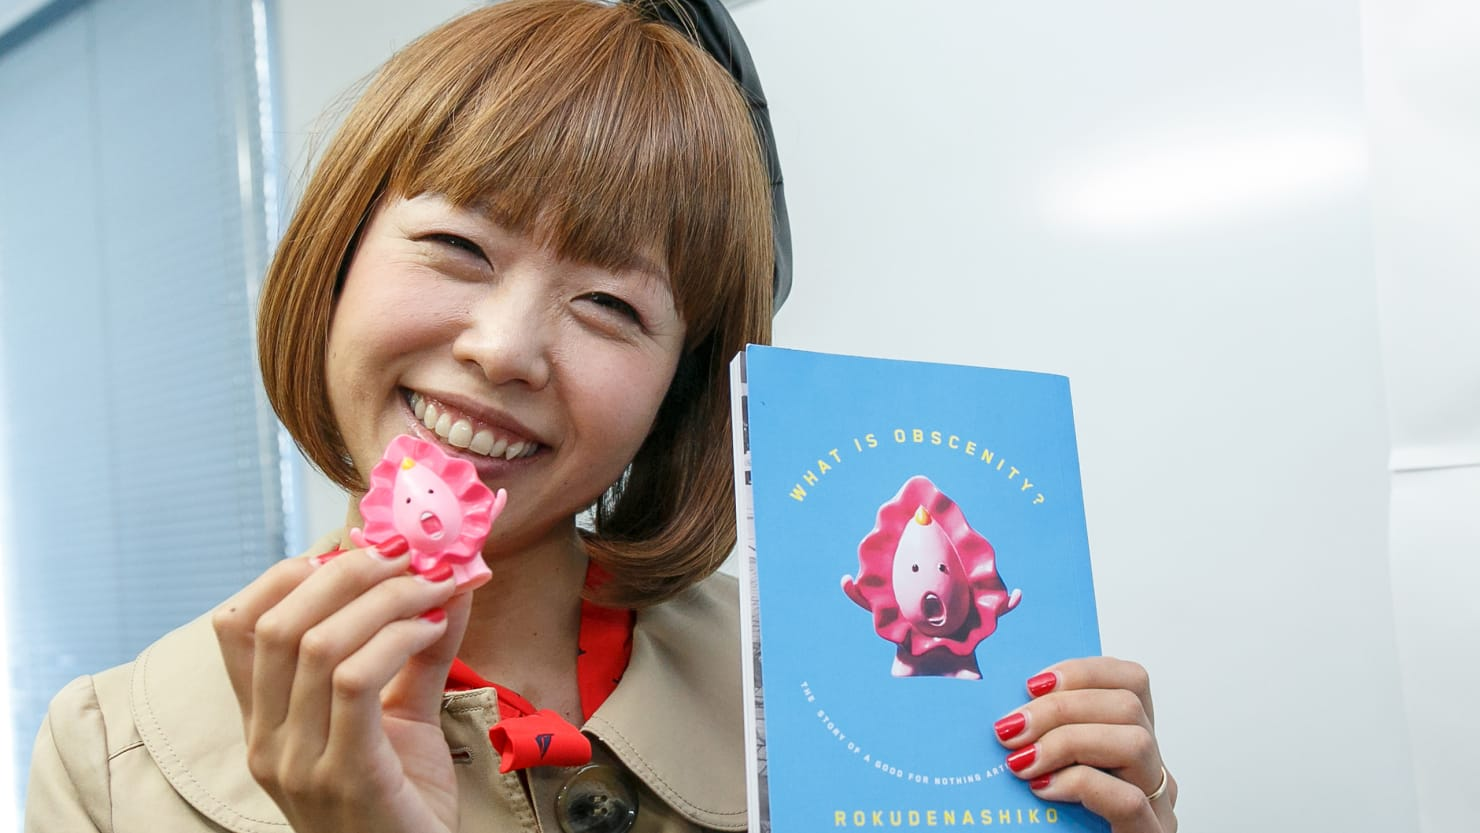 The Japanese Artist Persecuted For Her 'Pussy Boat' Vows To Keep Fighting